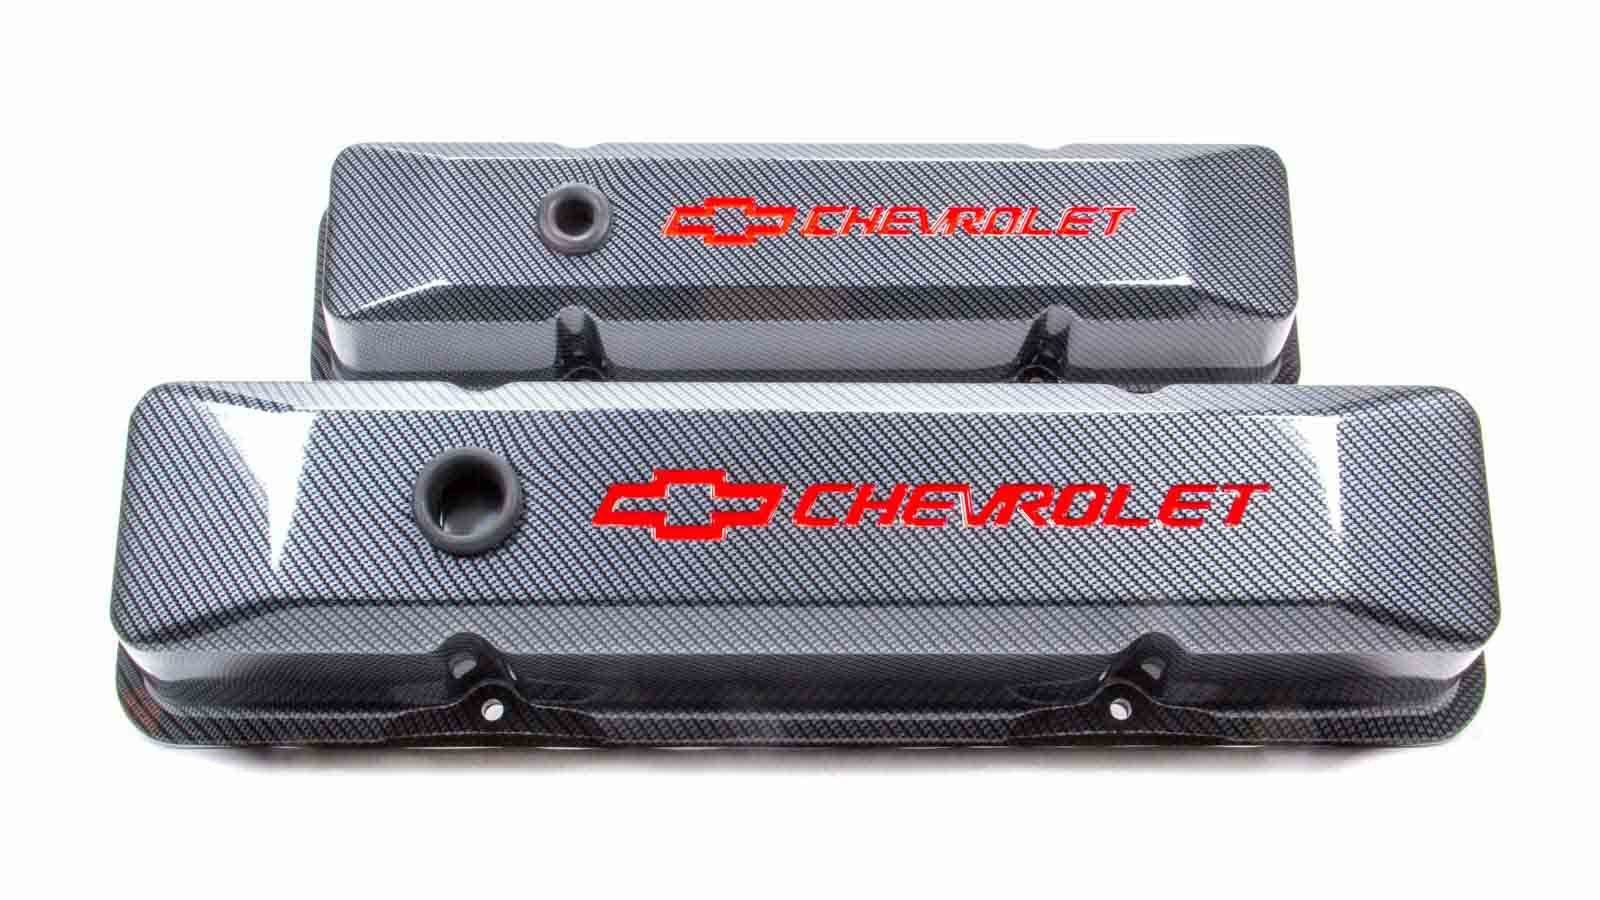 Proform 141-121 Valve Cover, Die-Cast, Tall, Baffled, Breather Hole, Recessed Chevrolet Bowtie Logo, Aluminum, Carbon Fiber Look, Small Block Chevy, Pair